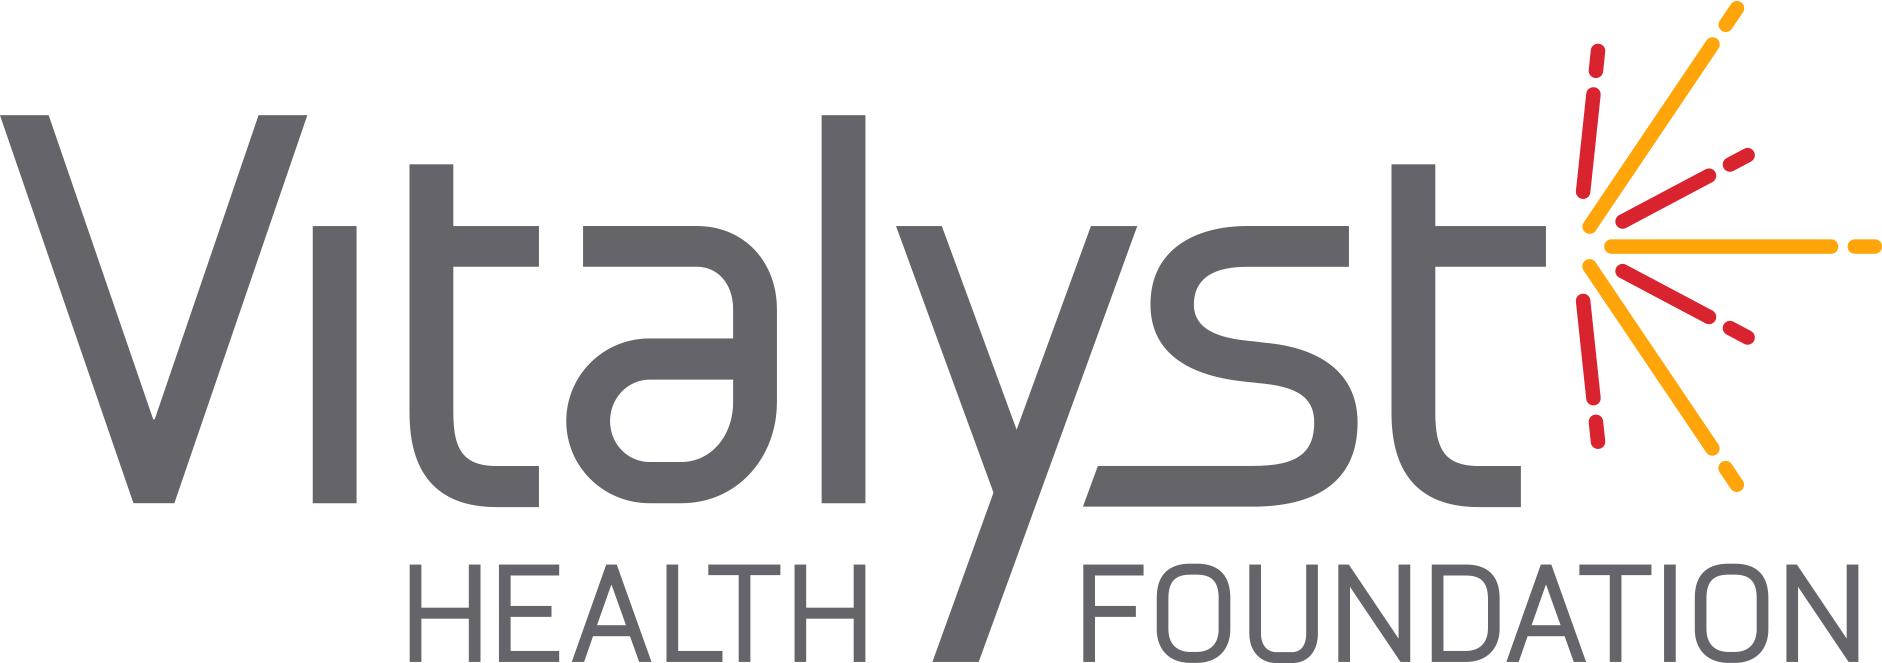 Vitalyst Health Foundation